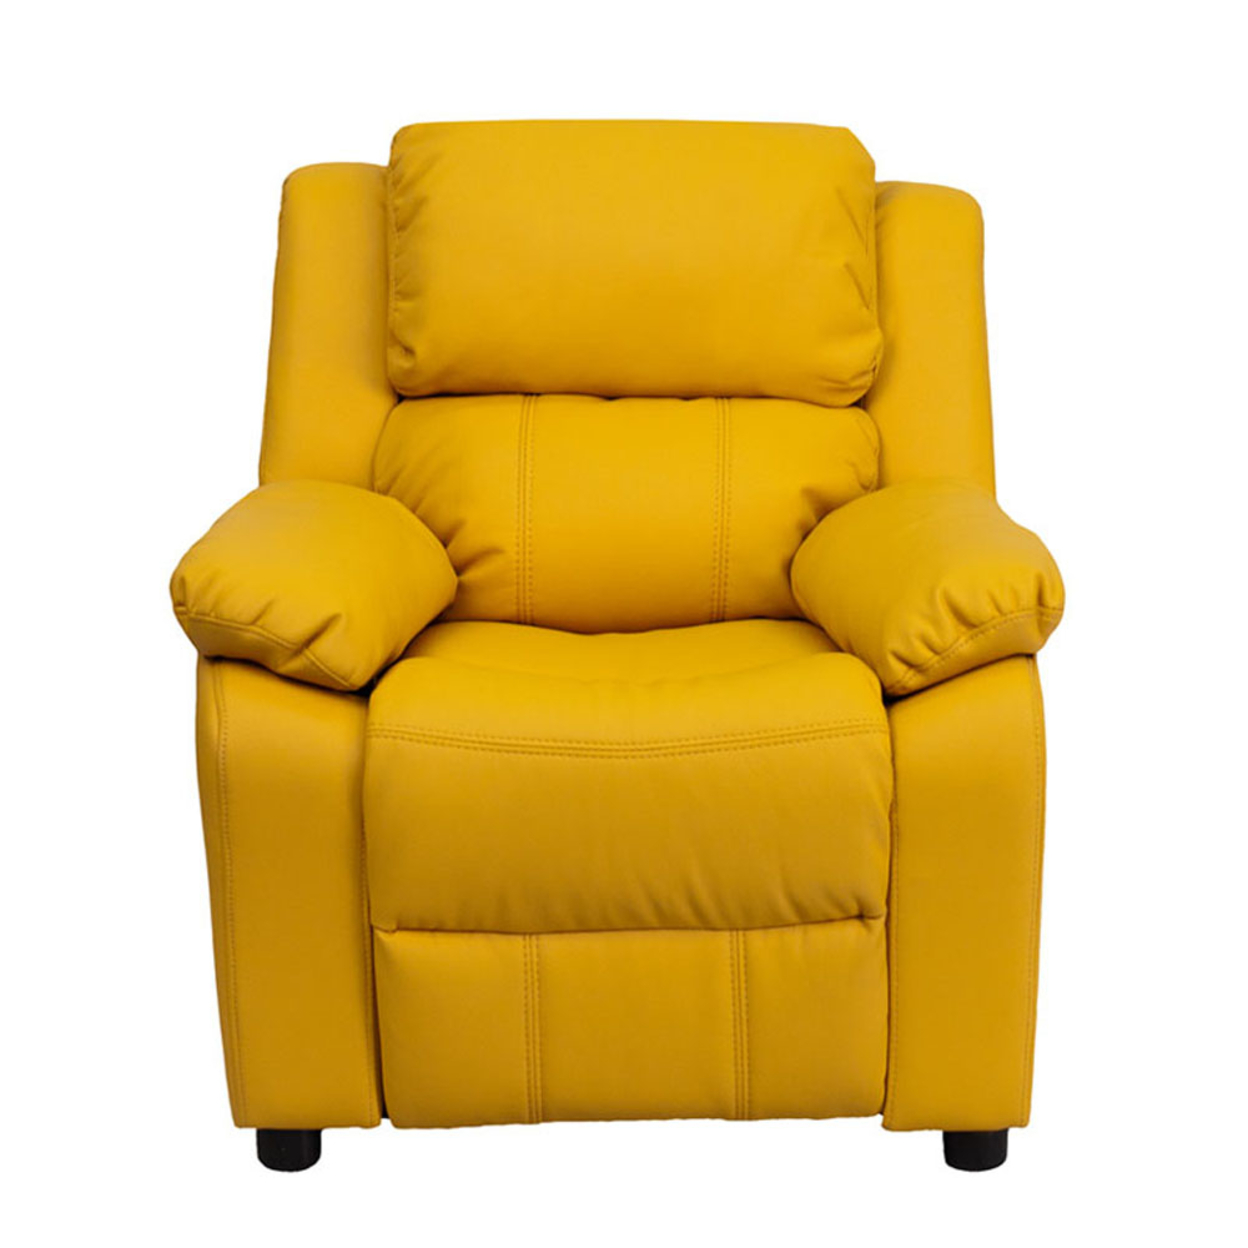 Flash Furniture Deluxe Heavily Padded Contemporary Yellow Vinyl Kids Recliner with Storage Arms [863-Bt-7985-Kid-Yel-Gg] 59e46013e224613cc06919c9